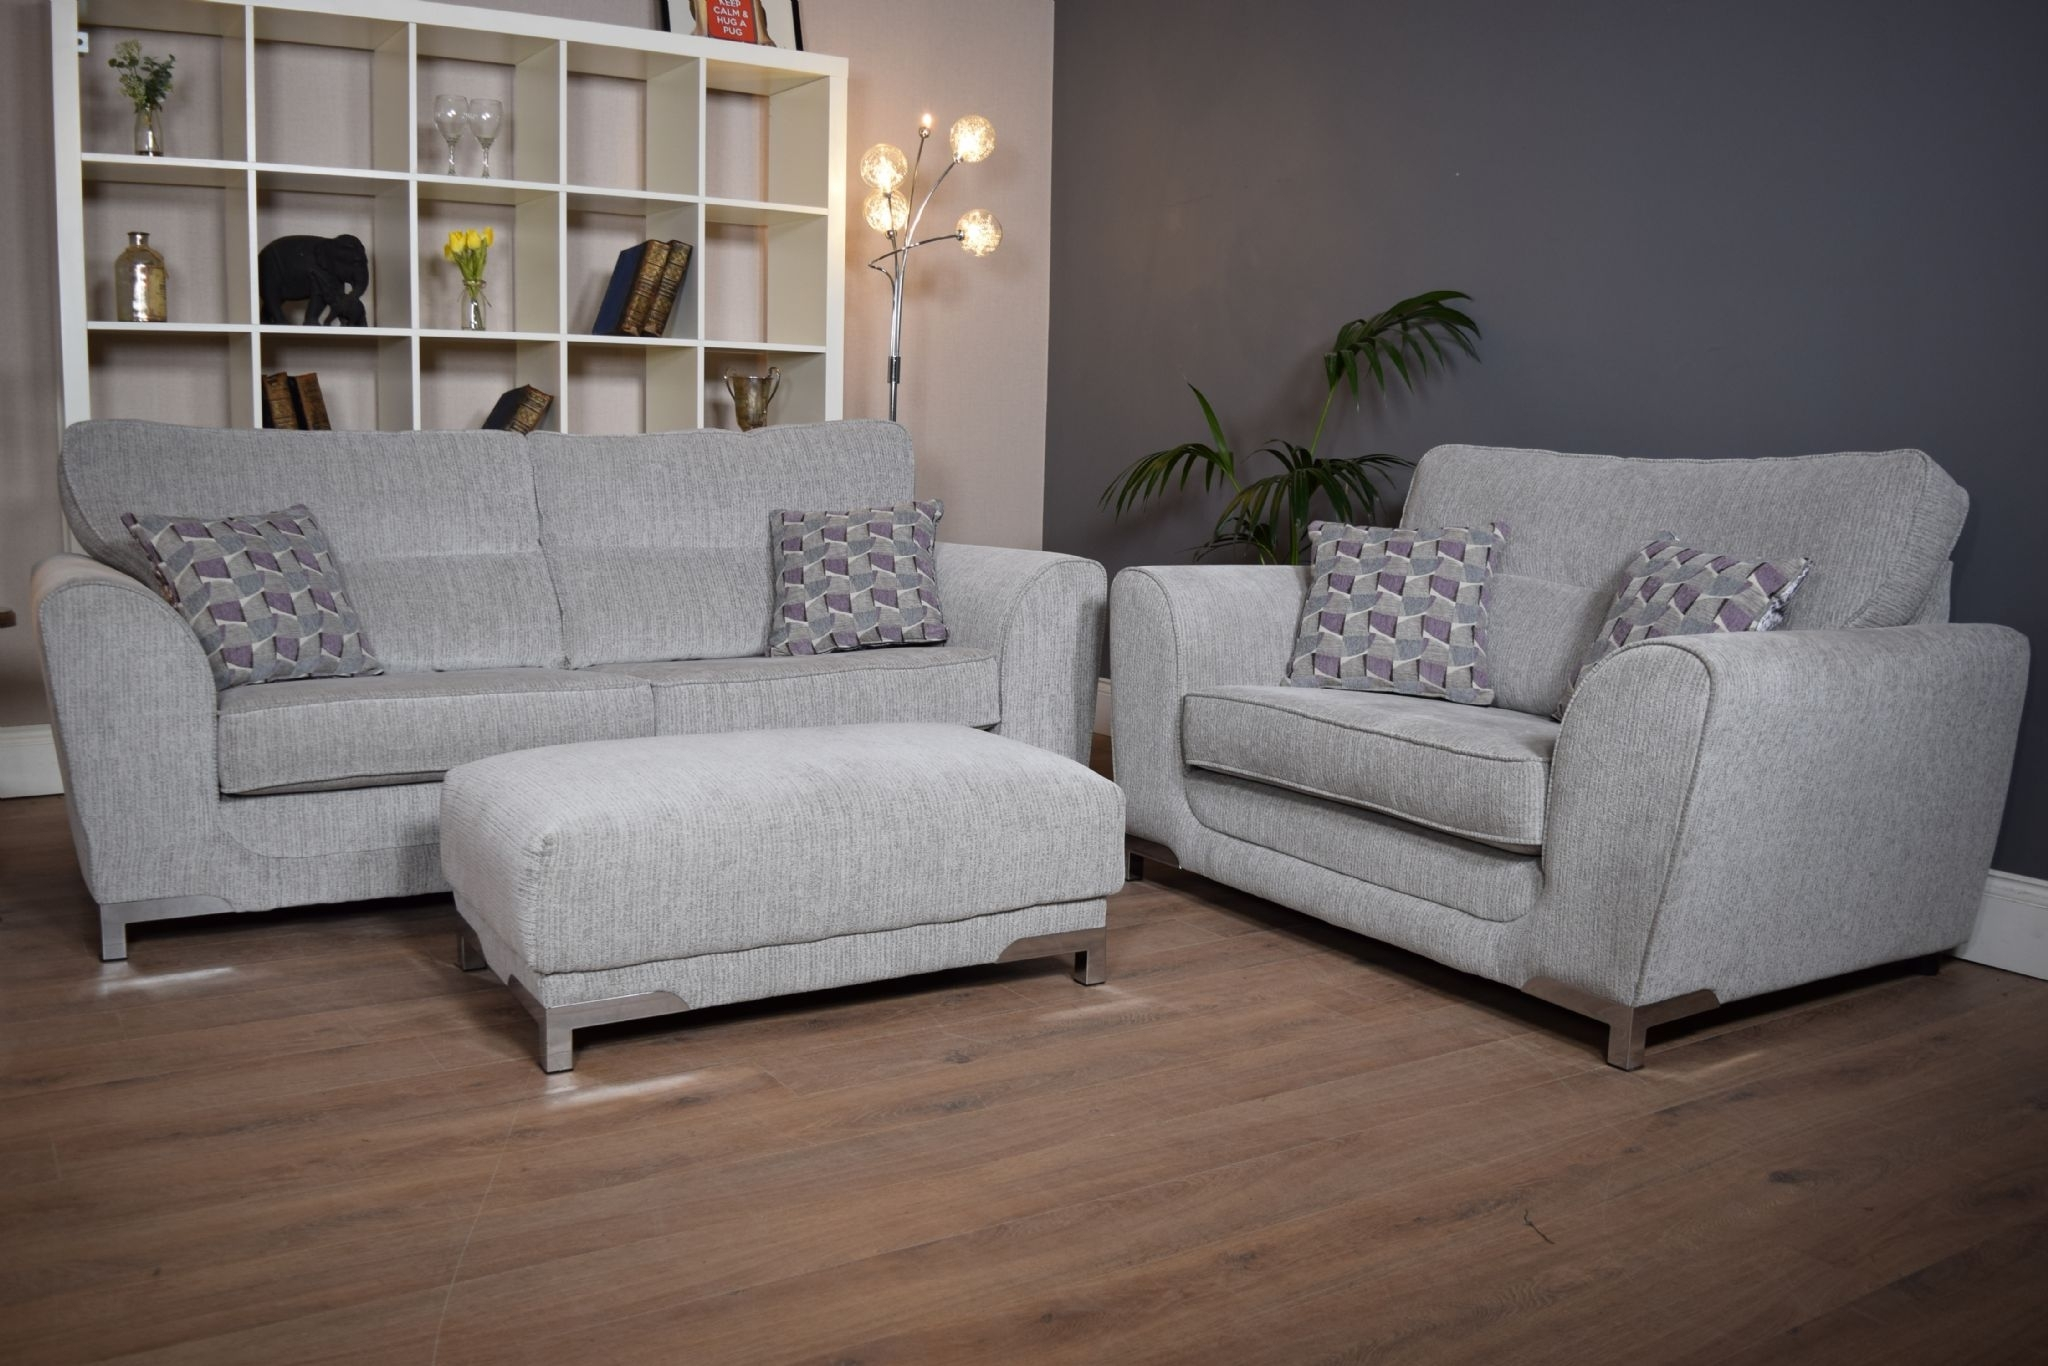 Set Nikki 3 Seater Sofa Cuddle Chair & Footstool Suite Set – Light Inside 3 Seater Sofas And Cuddle Chairs (View 8 of 10)